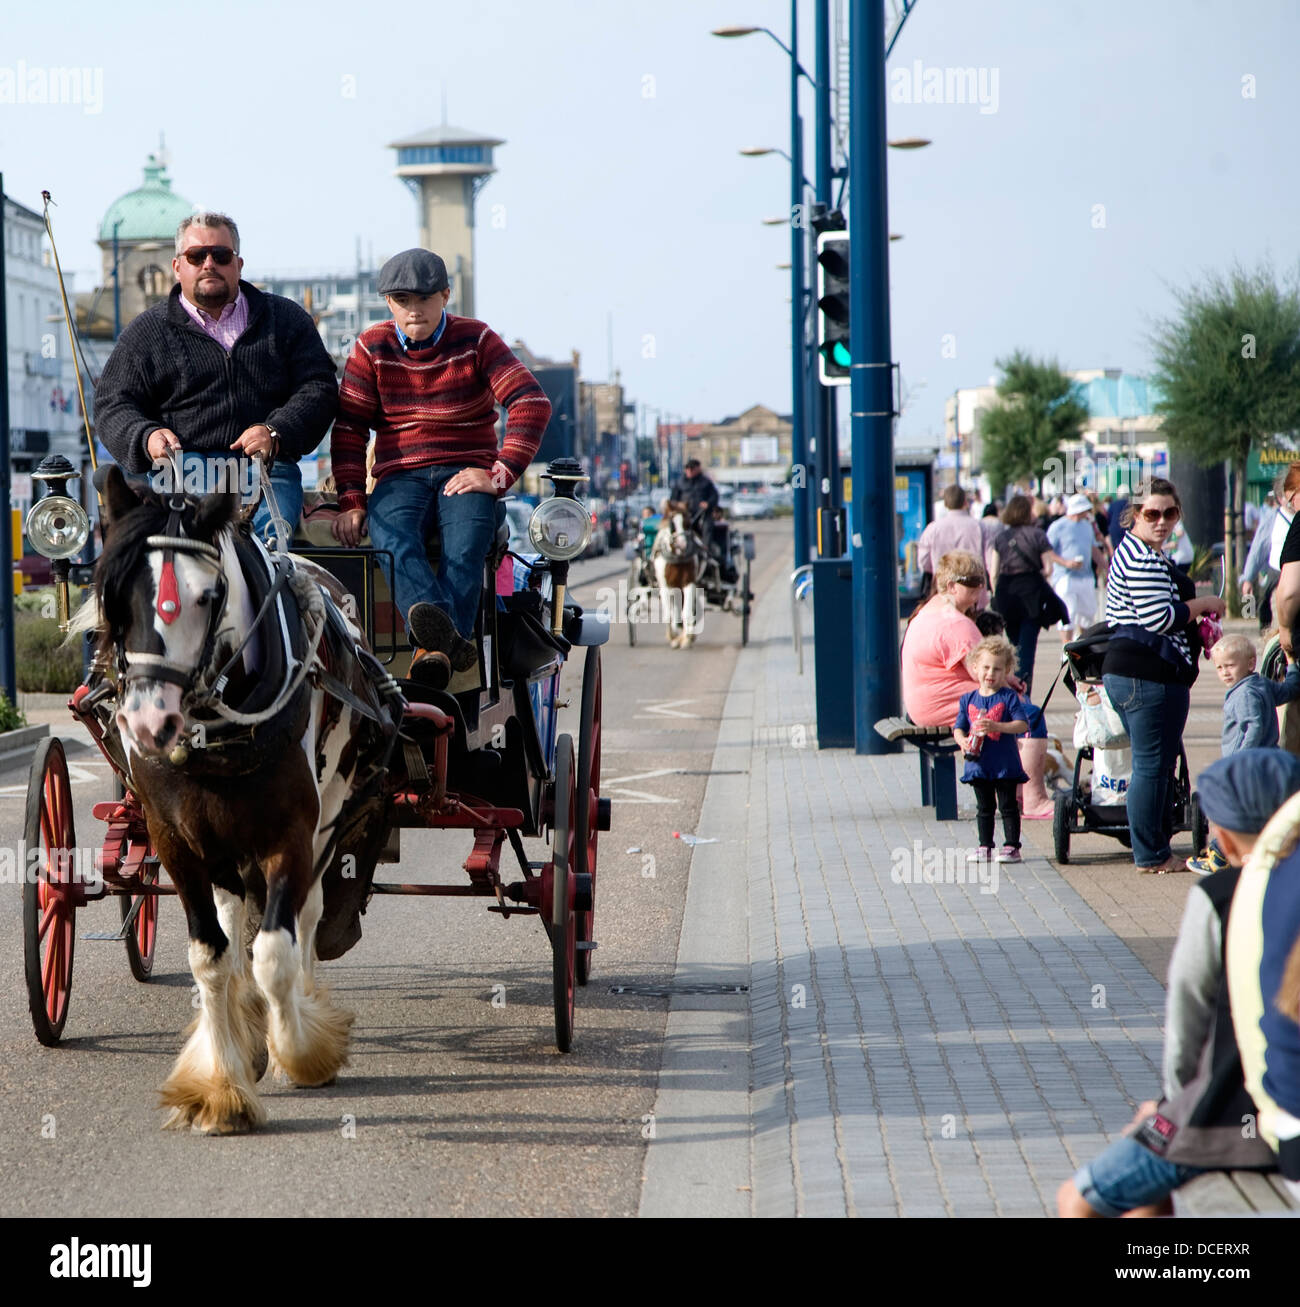 Pony and trap carriage ride Great Yarmouth, Norfolk, England - Stock Image